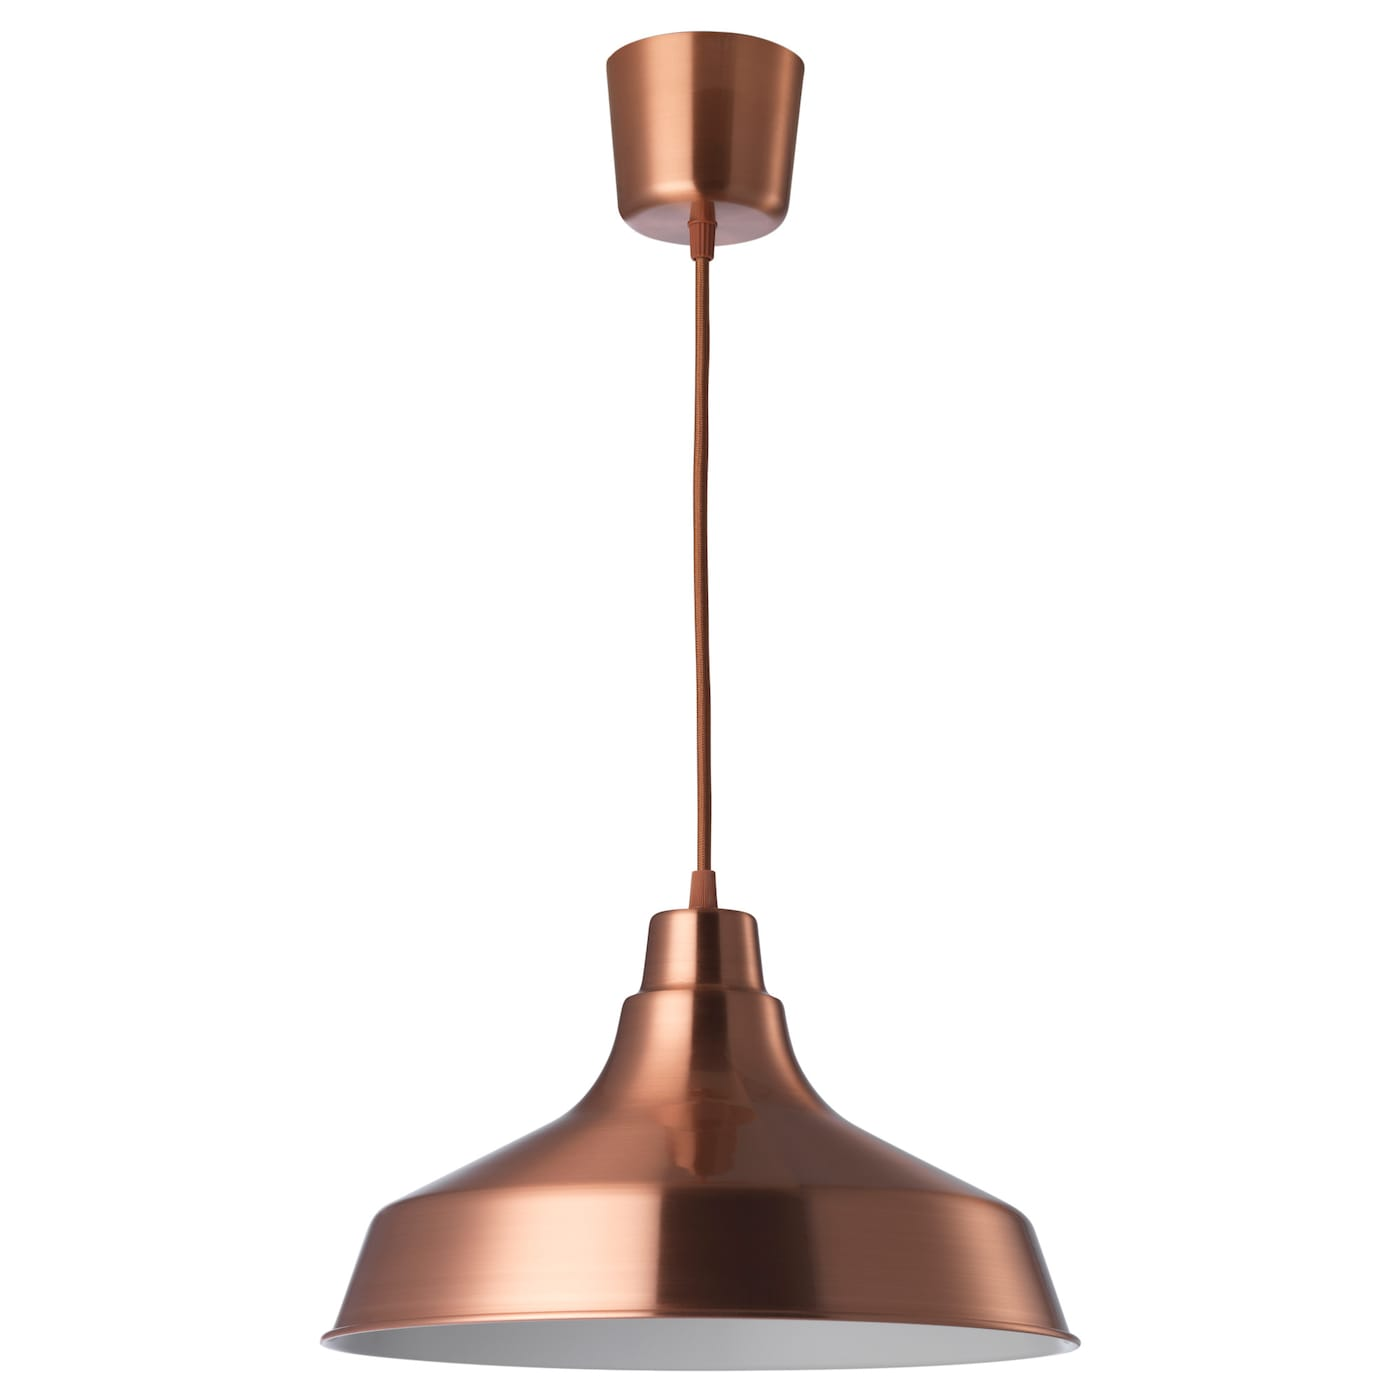 Vindkre pendant lamp copper colour 36 cm ikea ikea vindkre pendant lamp mozeypictures Image collections